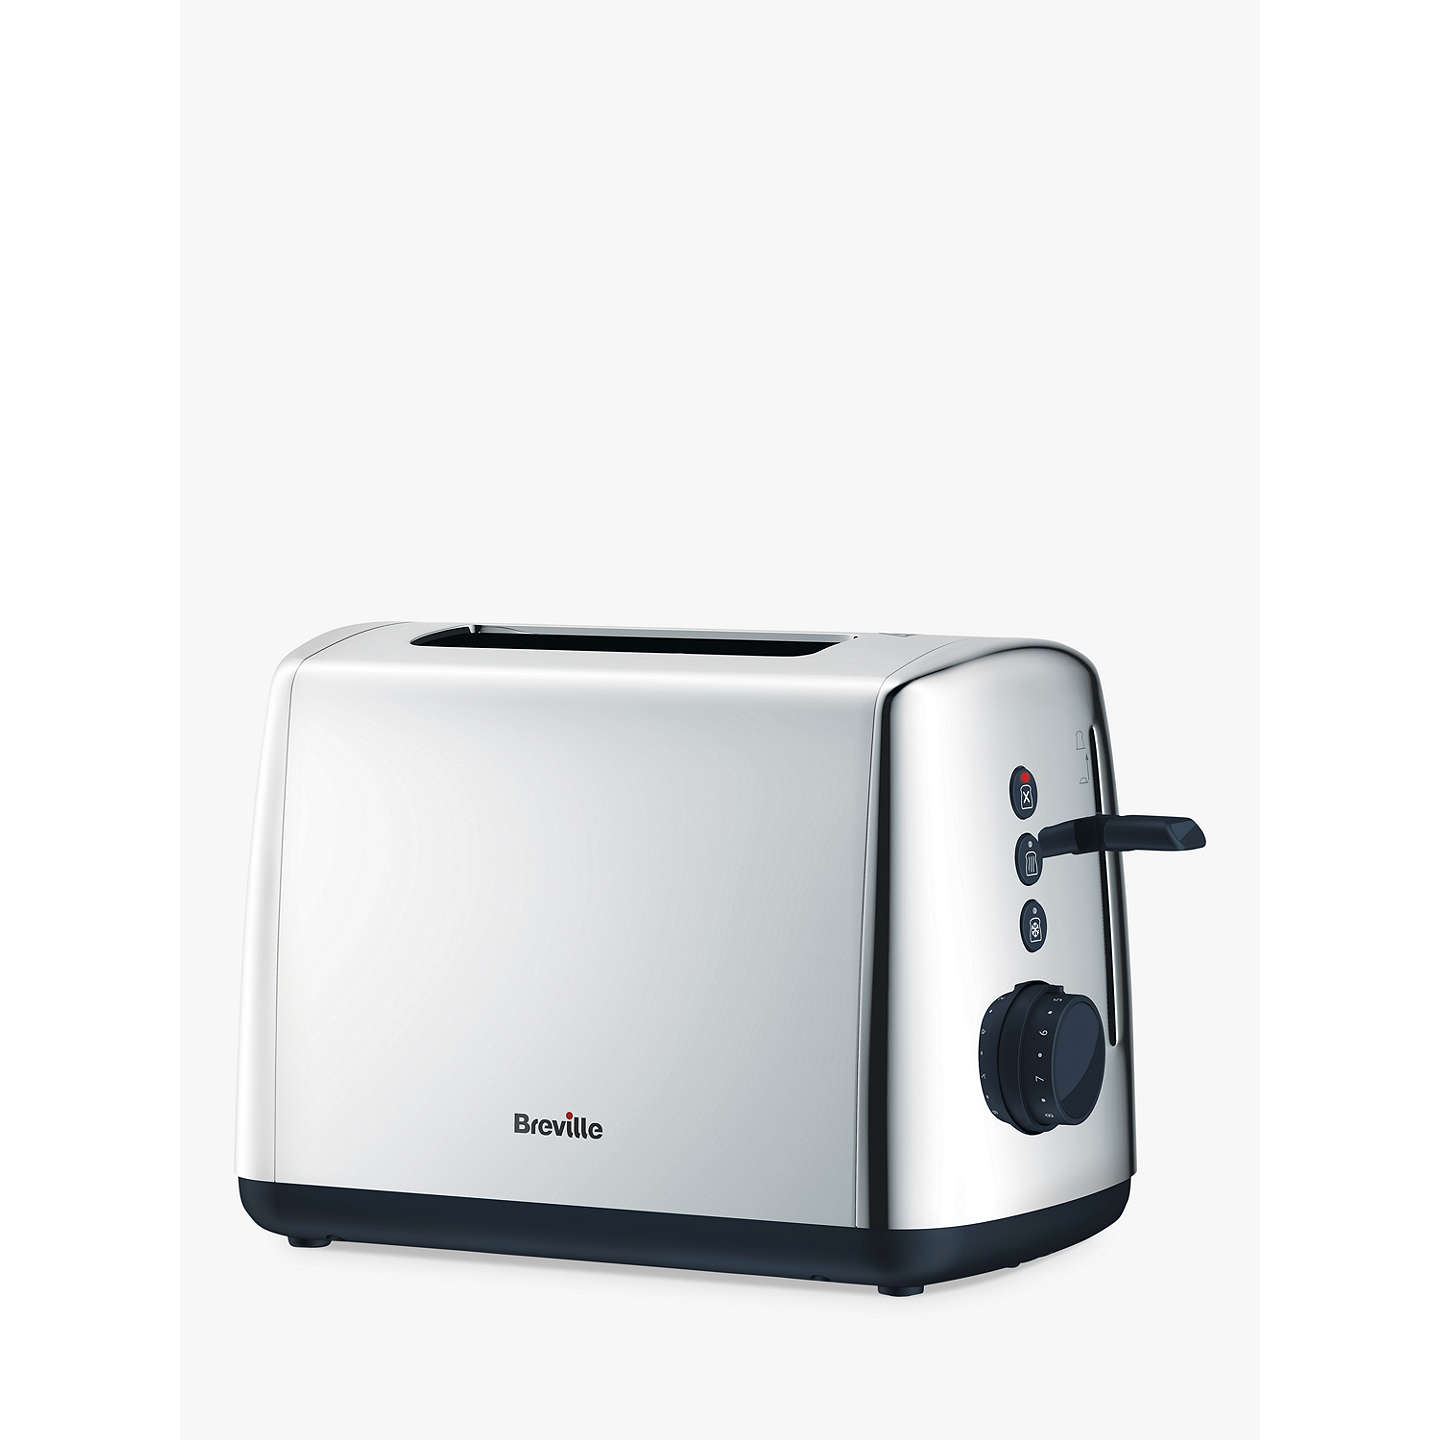 BuyBreville VTT548 2-Slice Toaster, Stainless Steel Online at johnlewis.com